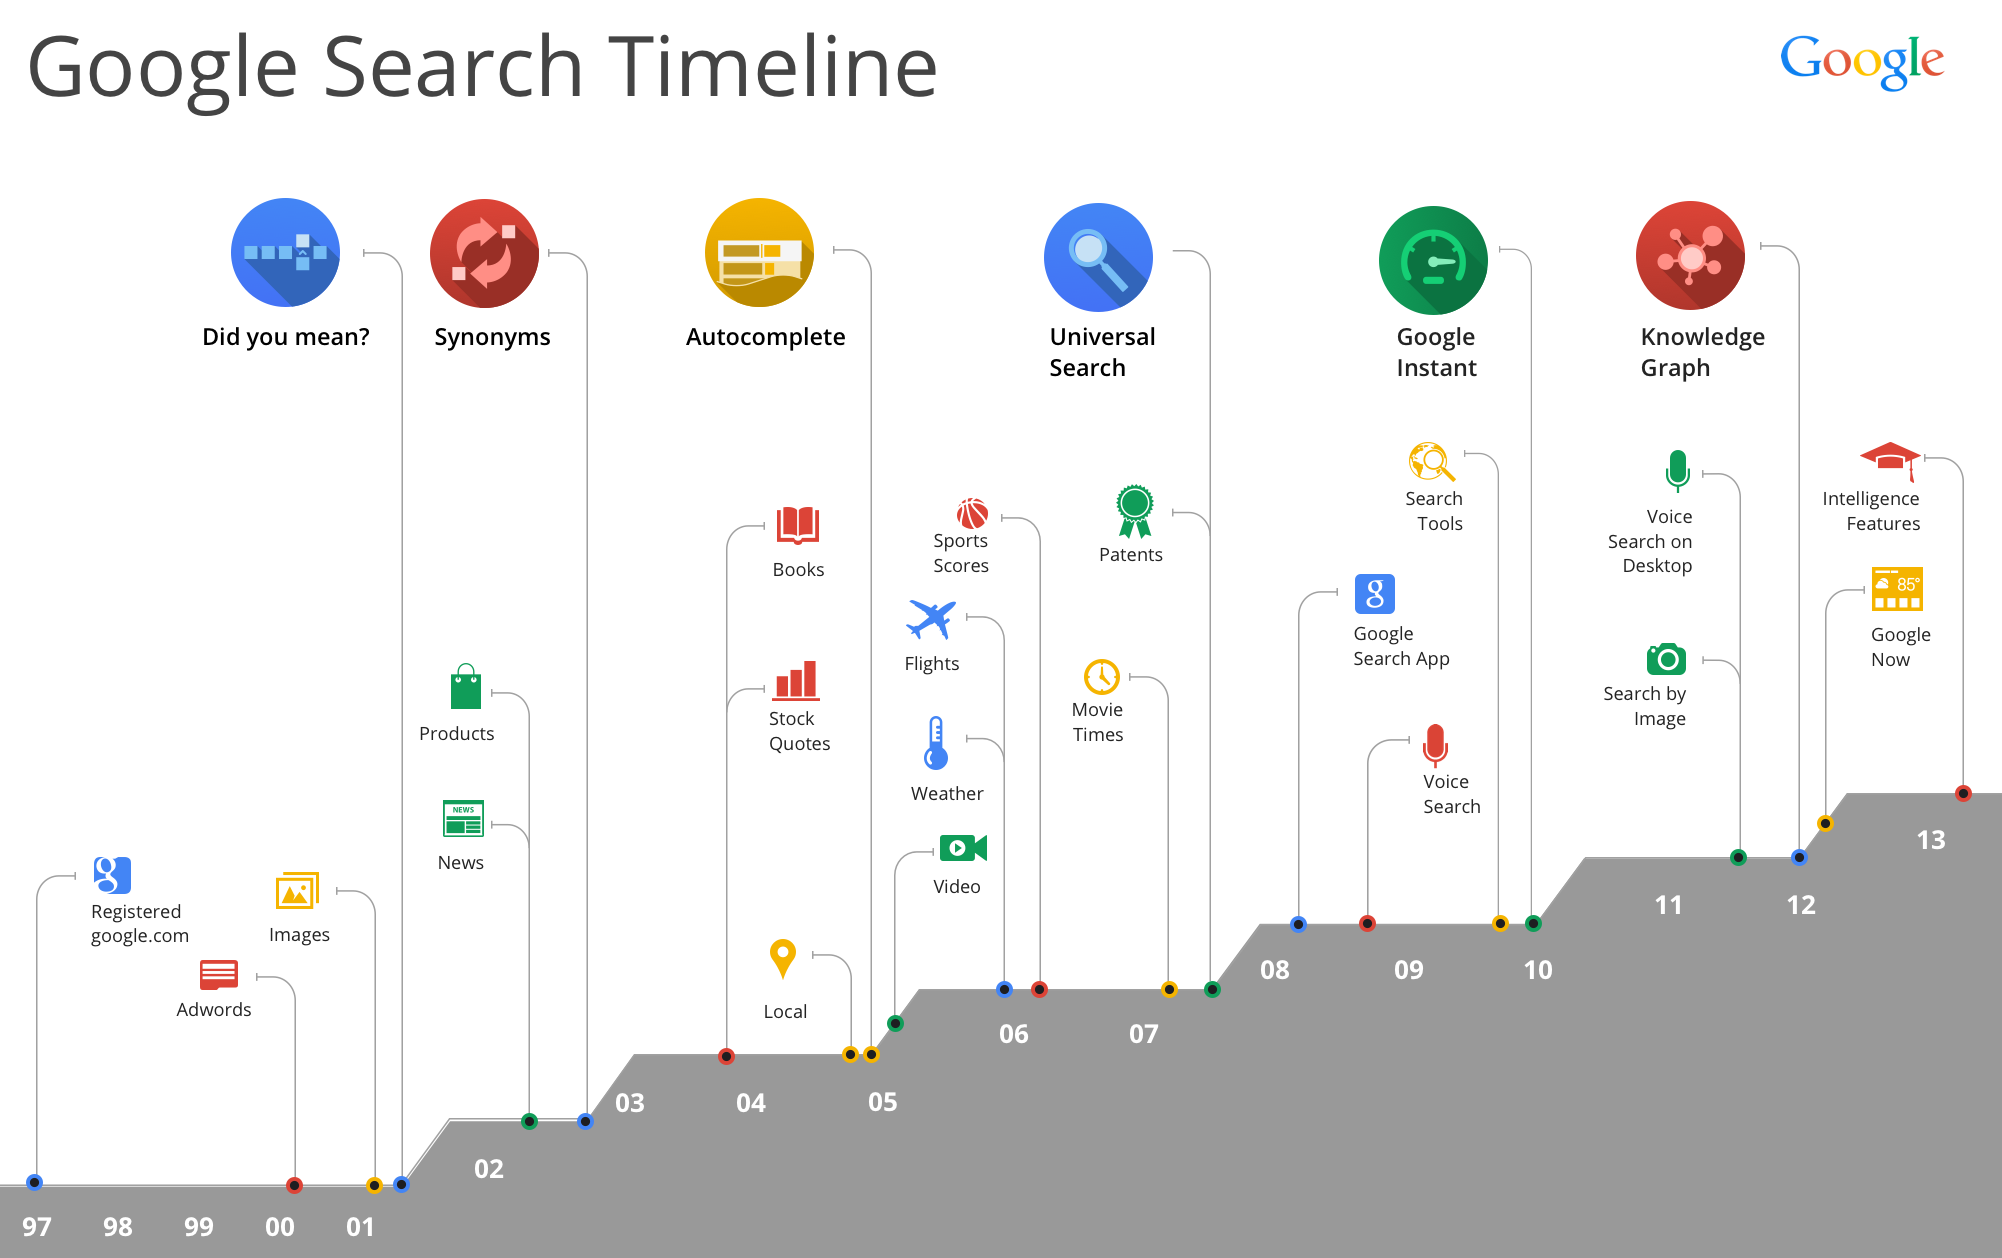 Google search history timeline from 1997 to 2013: infographic